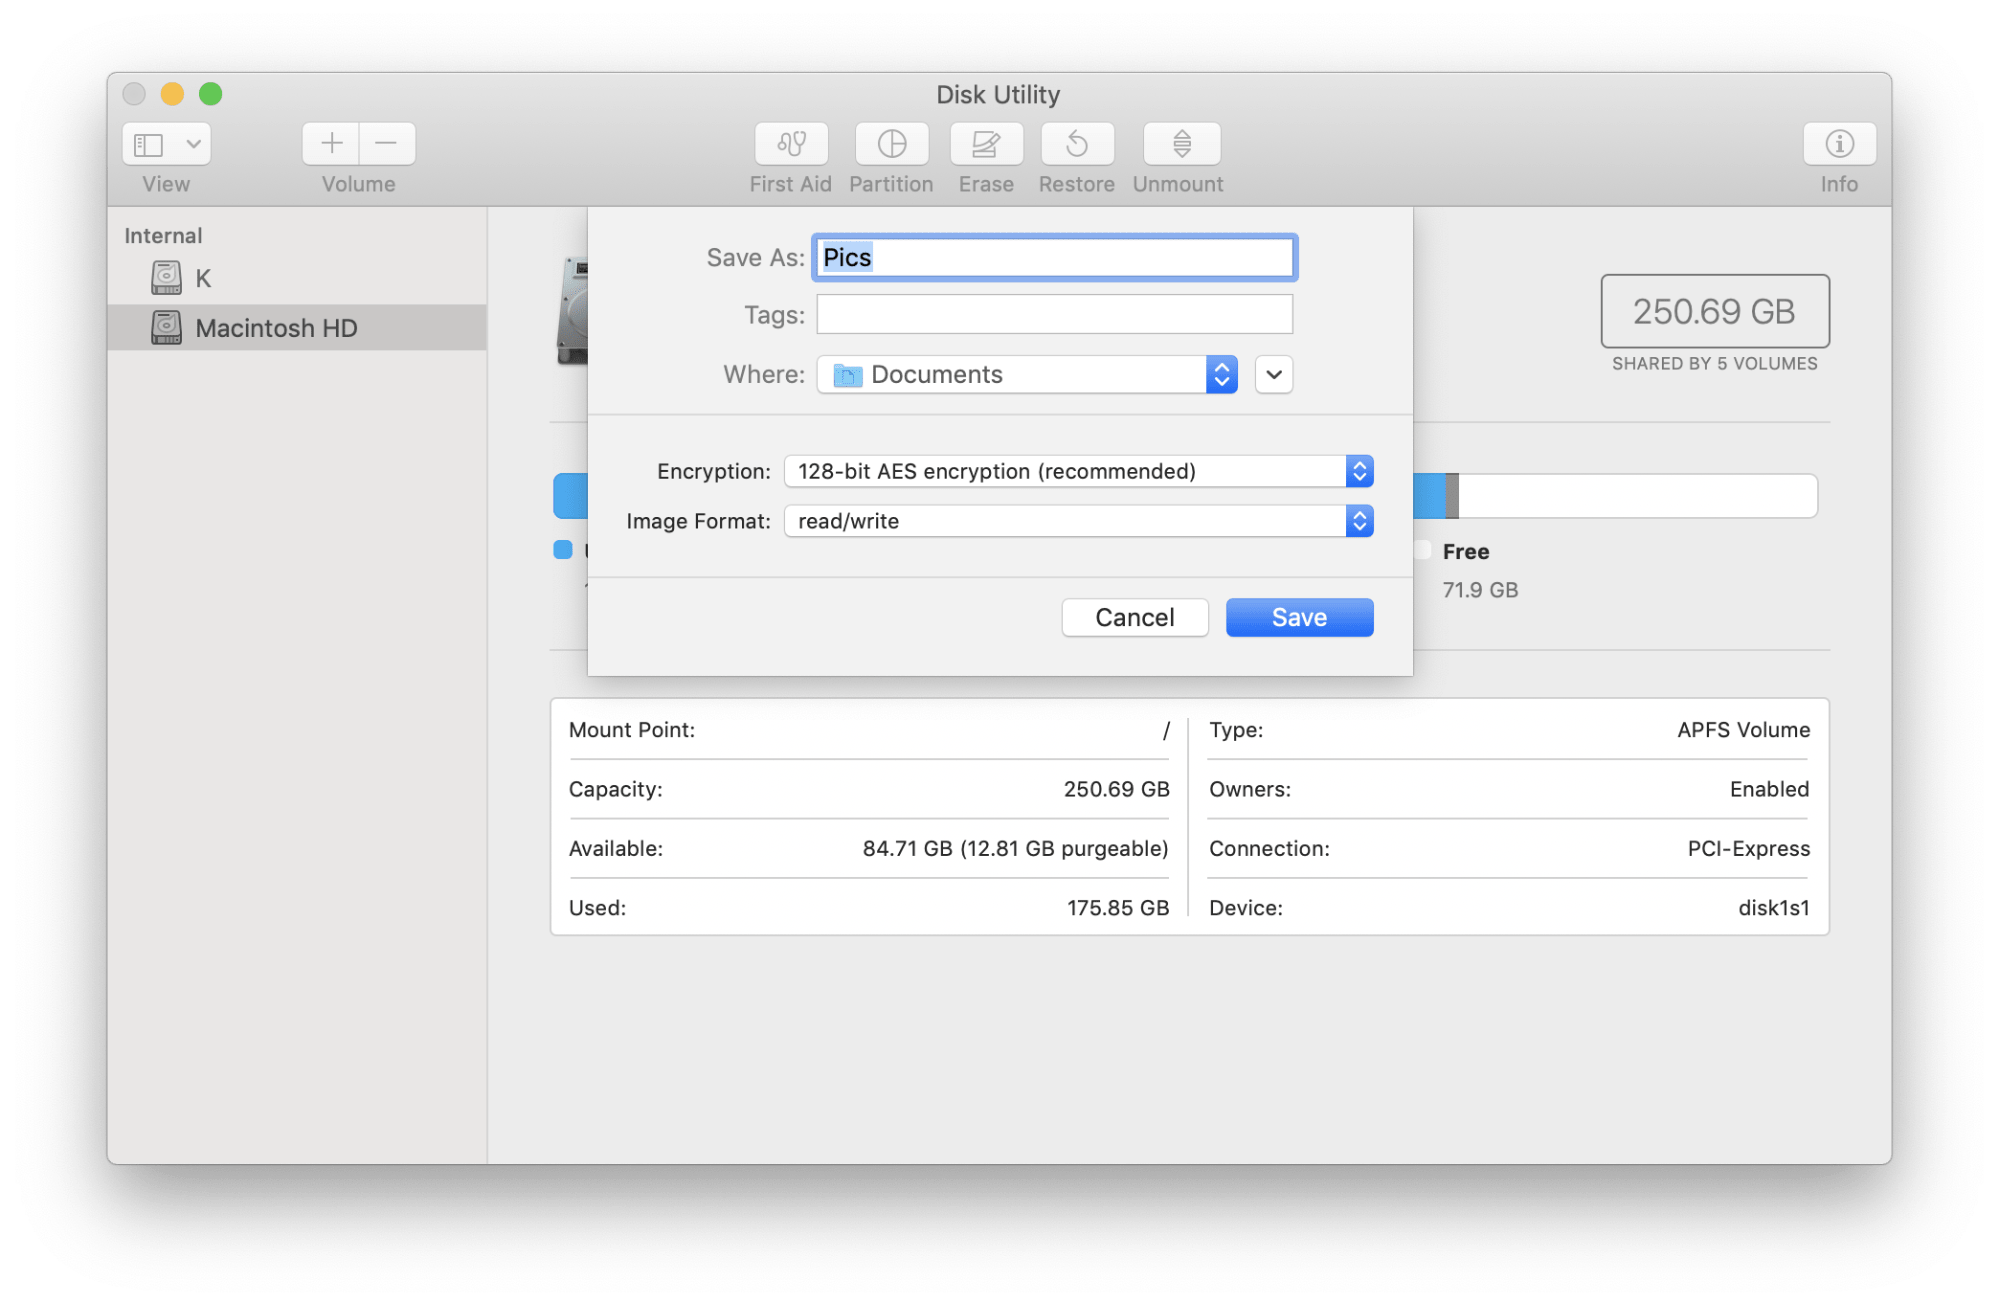 New disk image options panel